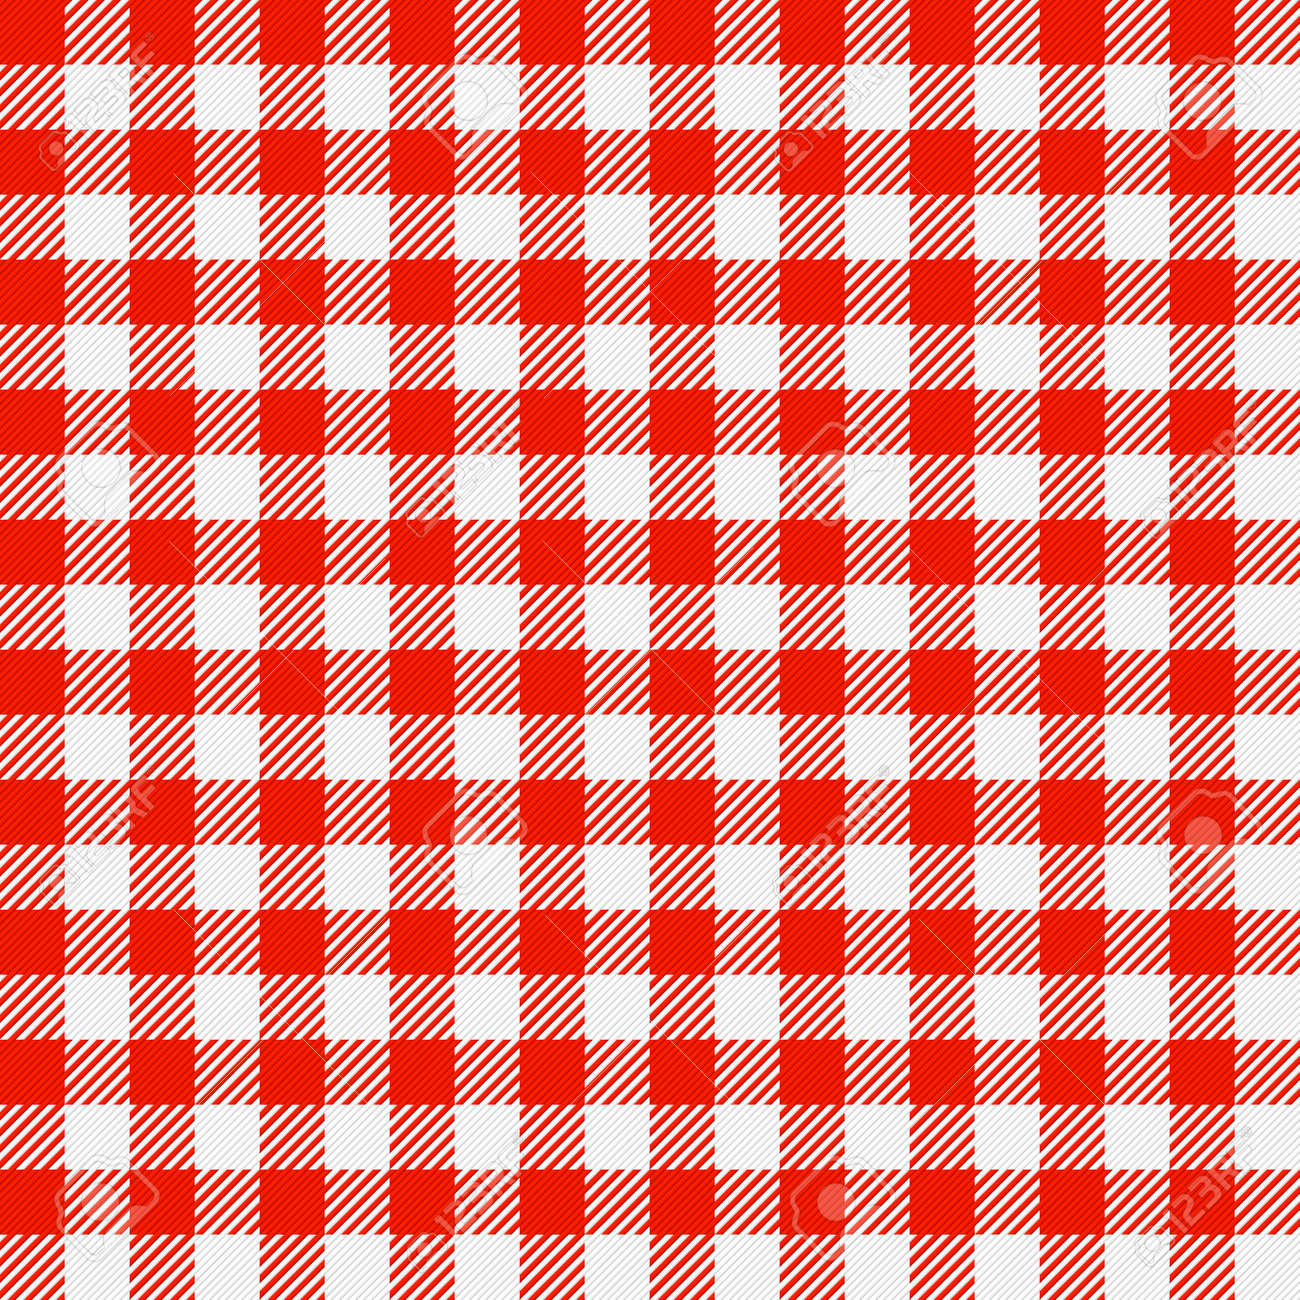 Captivating Checkered Tablecloth Seamless Stock Vector   13963686